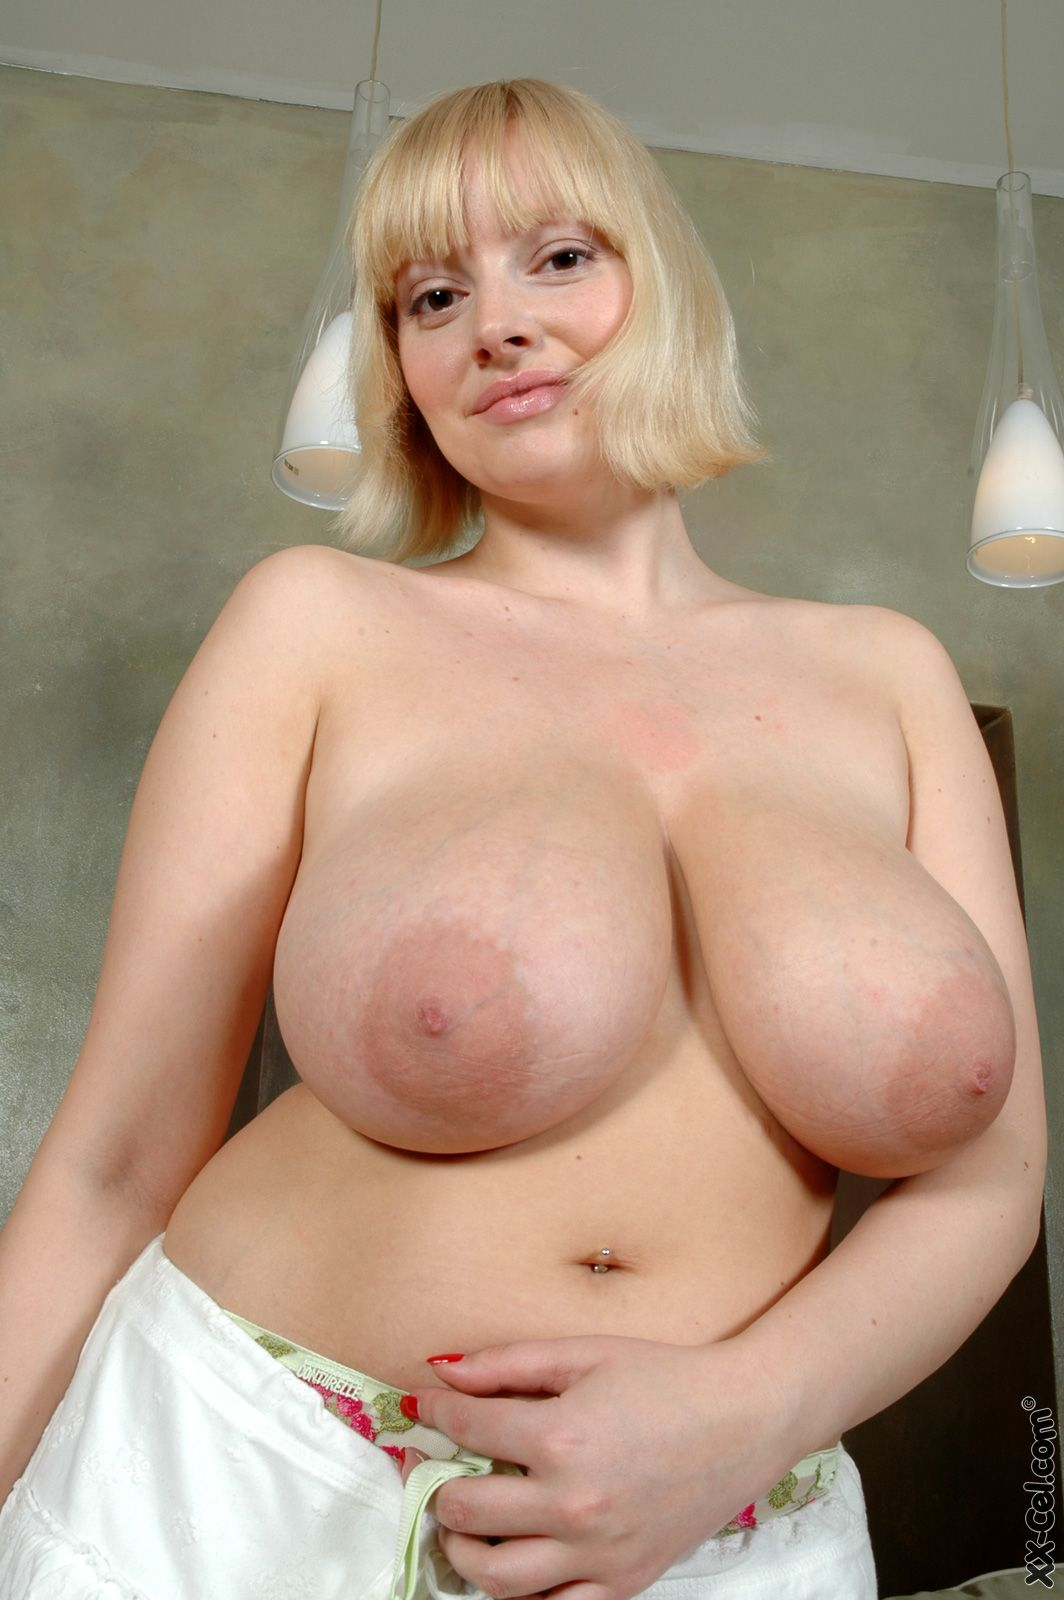 Big boob old ladies nudes think, that